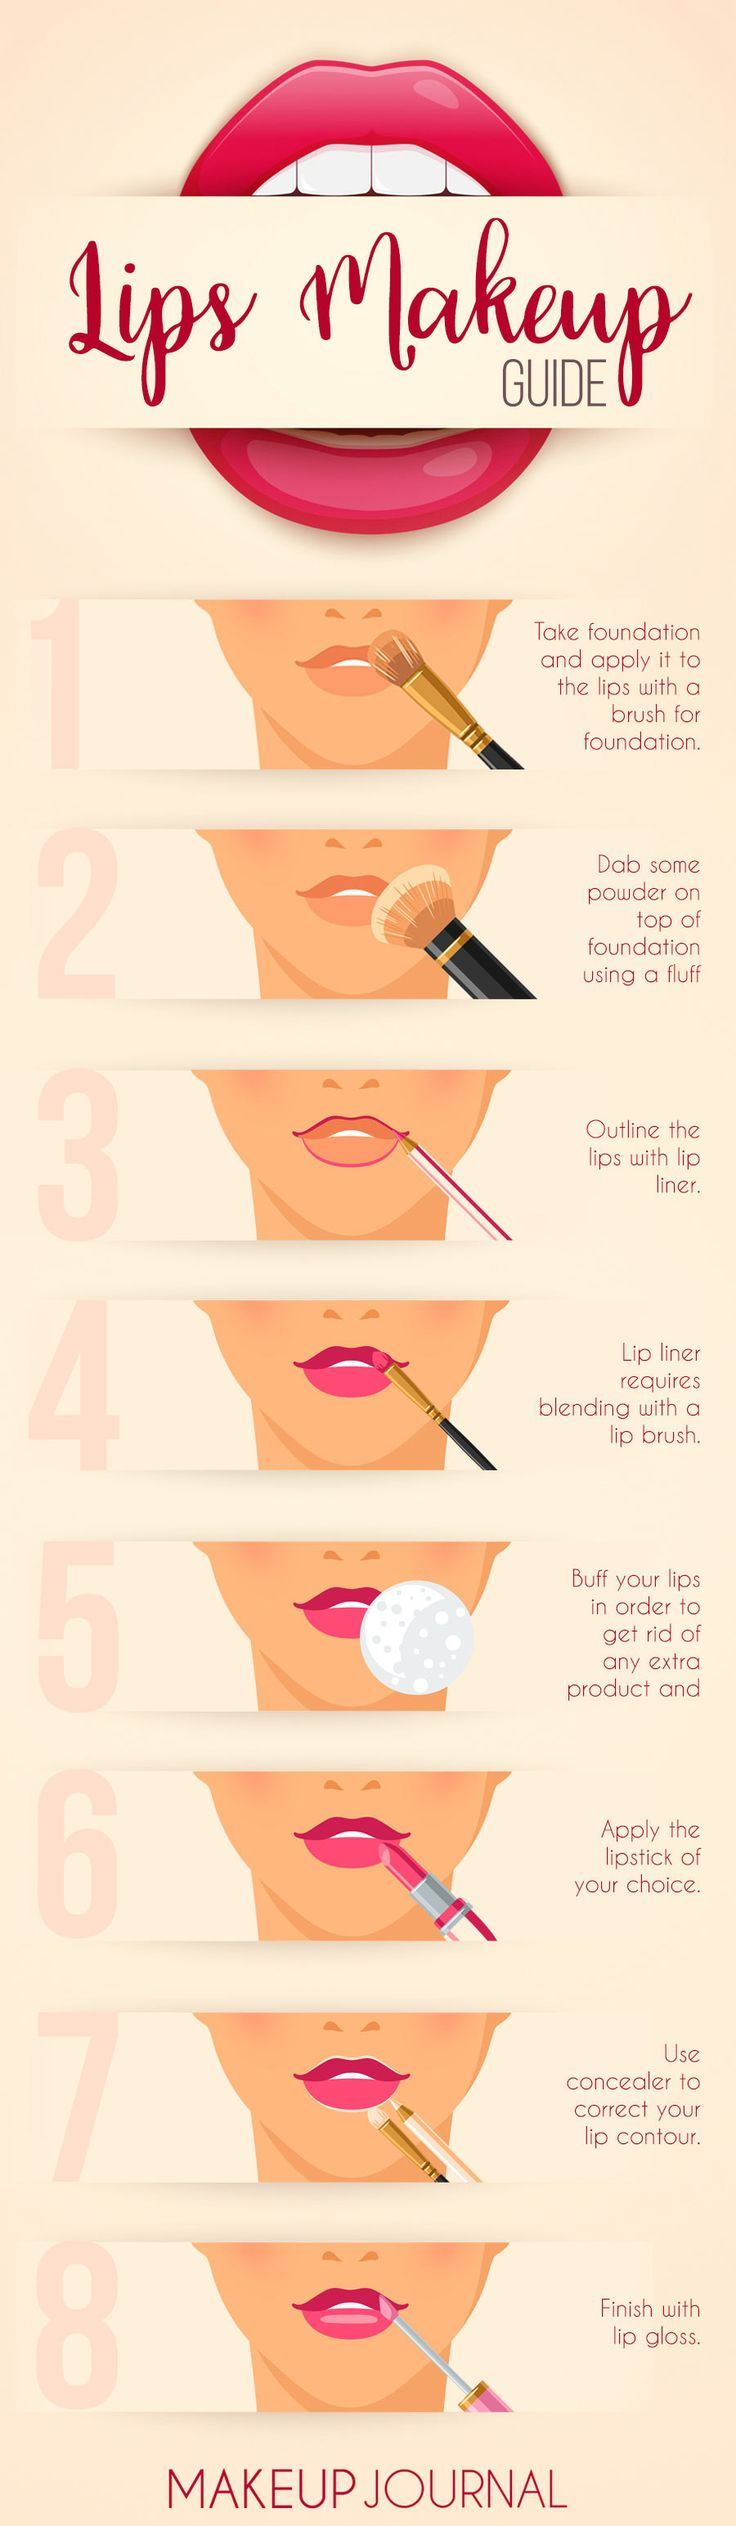 How to apply lipstick? It may have never occurred to you that you do not anything about it. Luckily, you have us at your service and we happen to know everything about the before and after processes that a perfect lipstick application consists off! Do not be shy to learn something new and useful! https://makeupjournal.com/how-to-apply-lipstick/ #makeup #makeuplover #makeupjunkie #lipstick